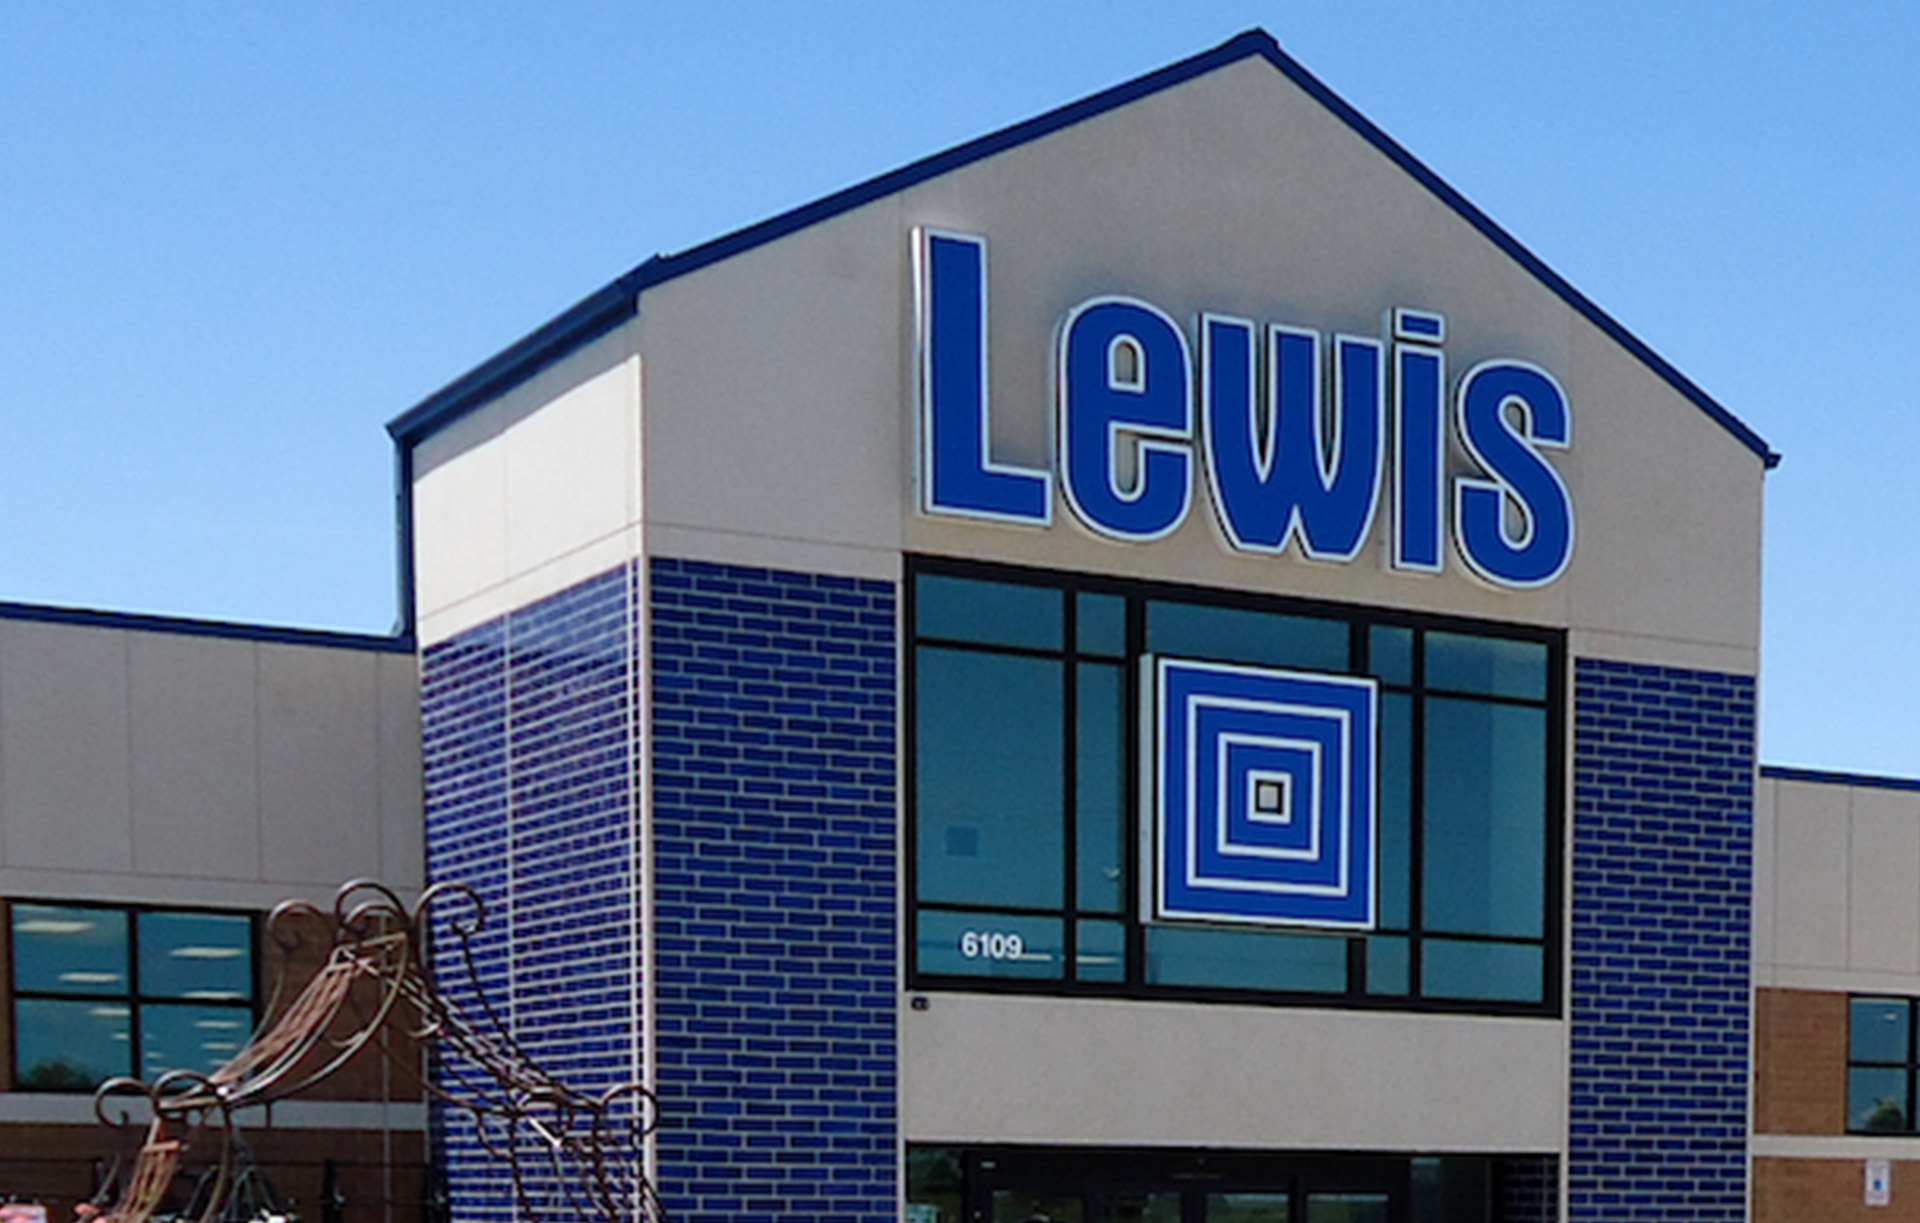 Global Biomedical and Lewis Drug Announce Their Partnership